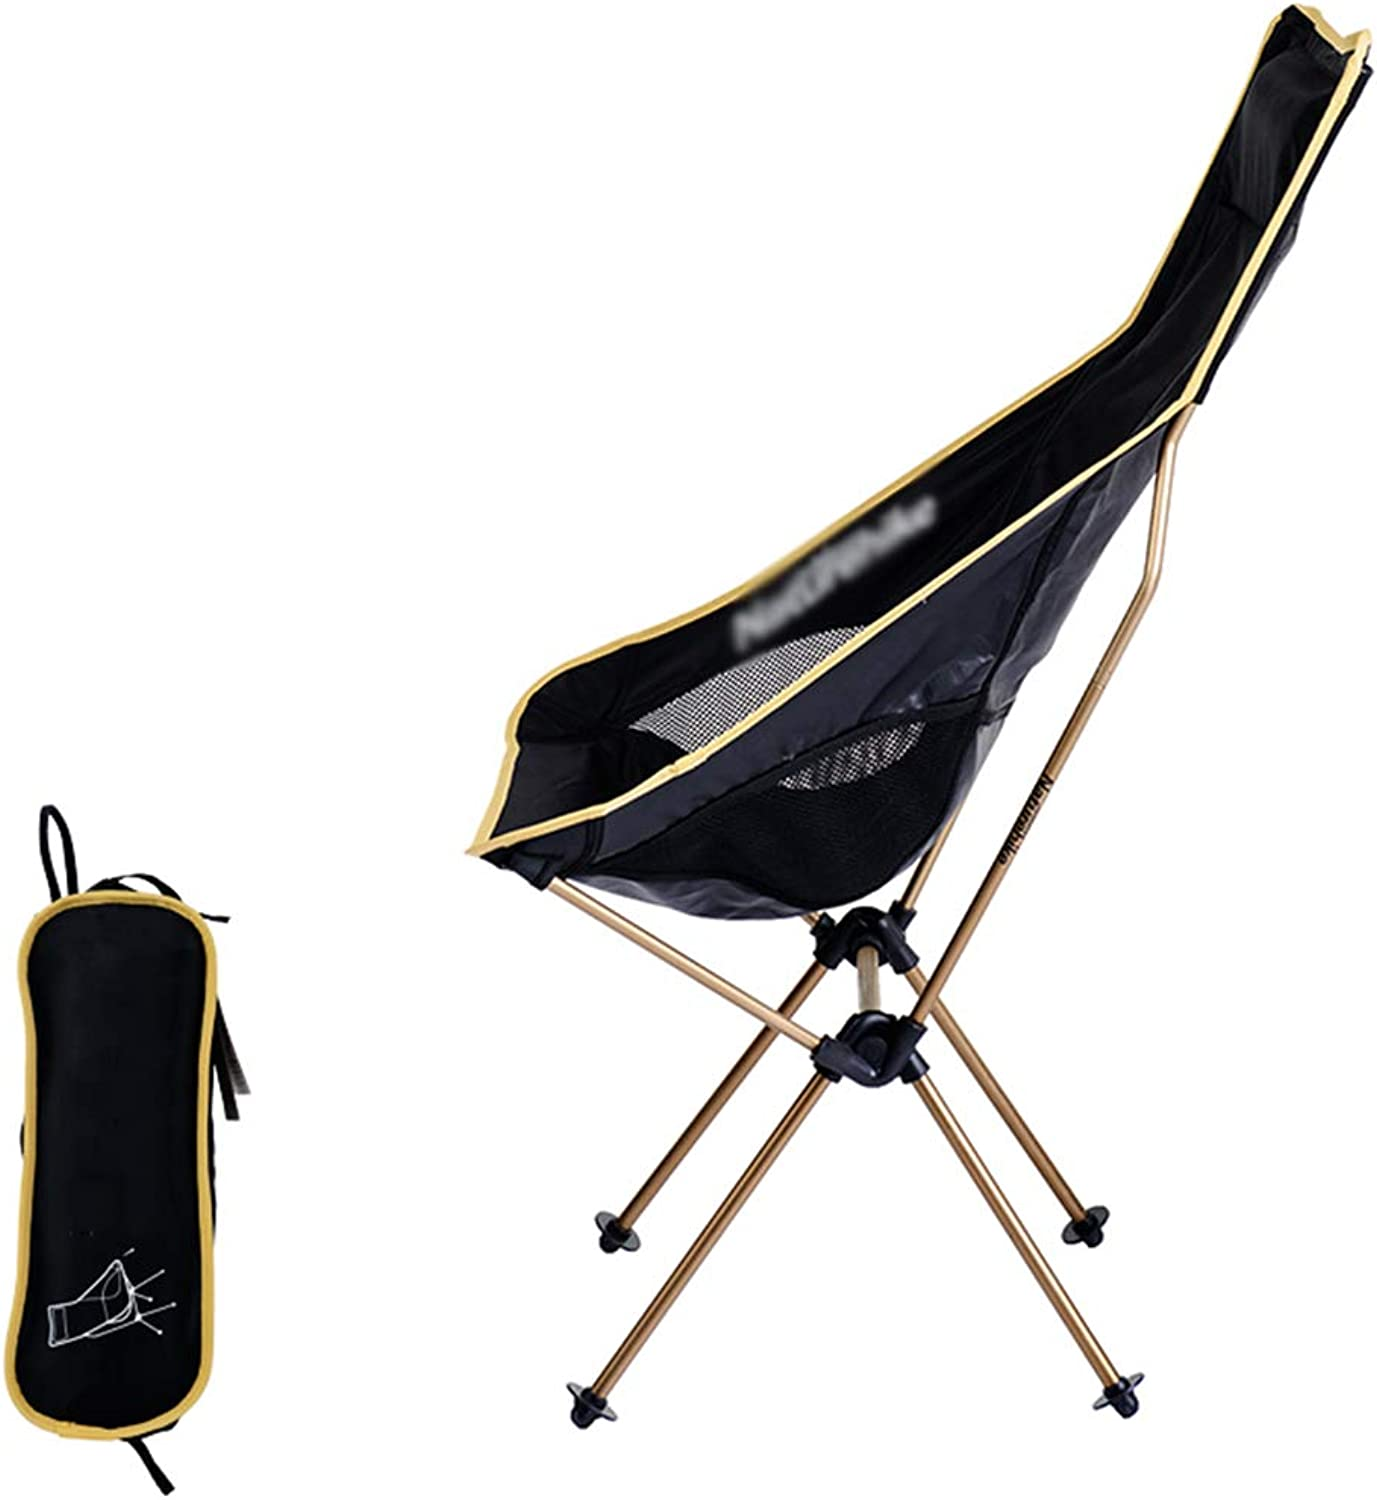 ZENGAI Camping Chair Lightweight Folding Chair with Carry Bag for Hiking Fishing Beach (color   Yellow)